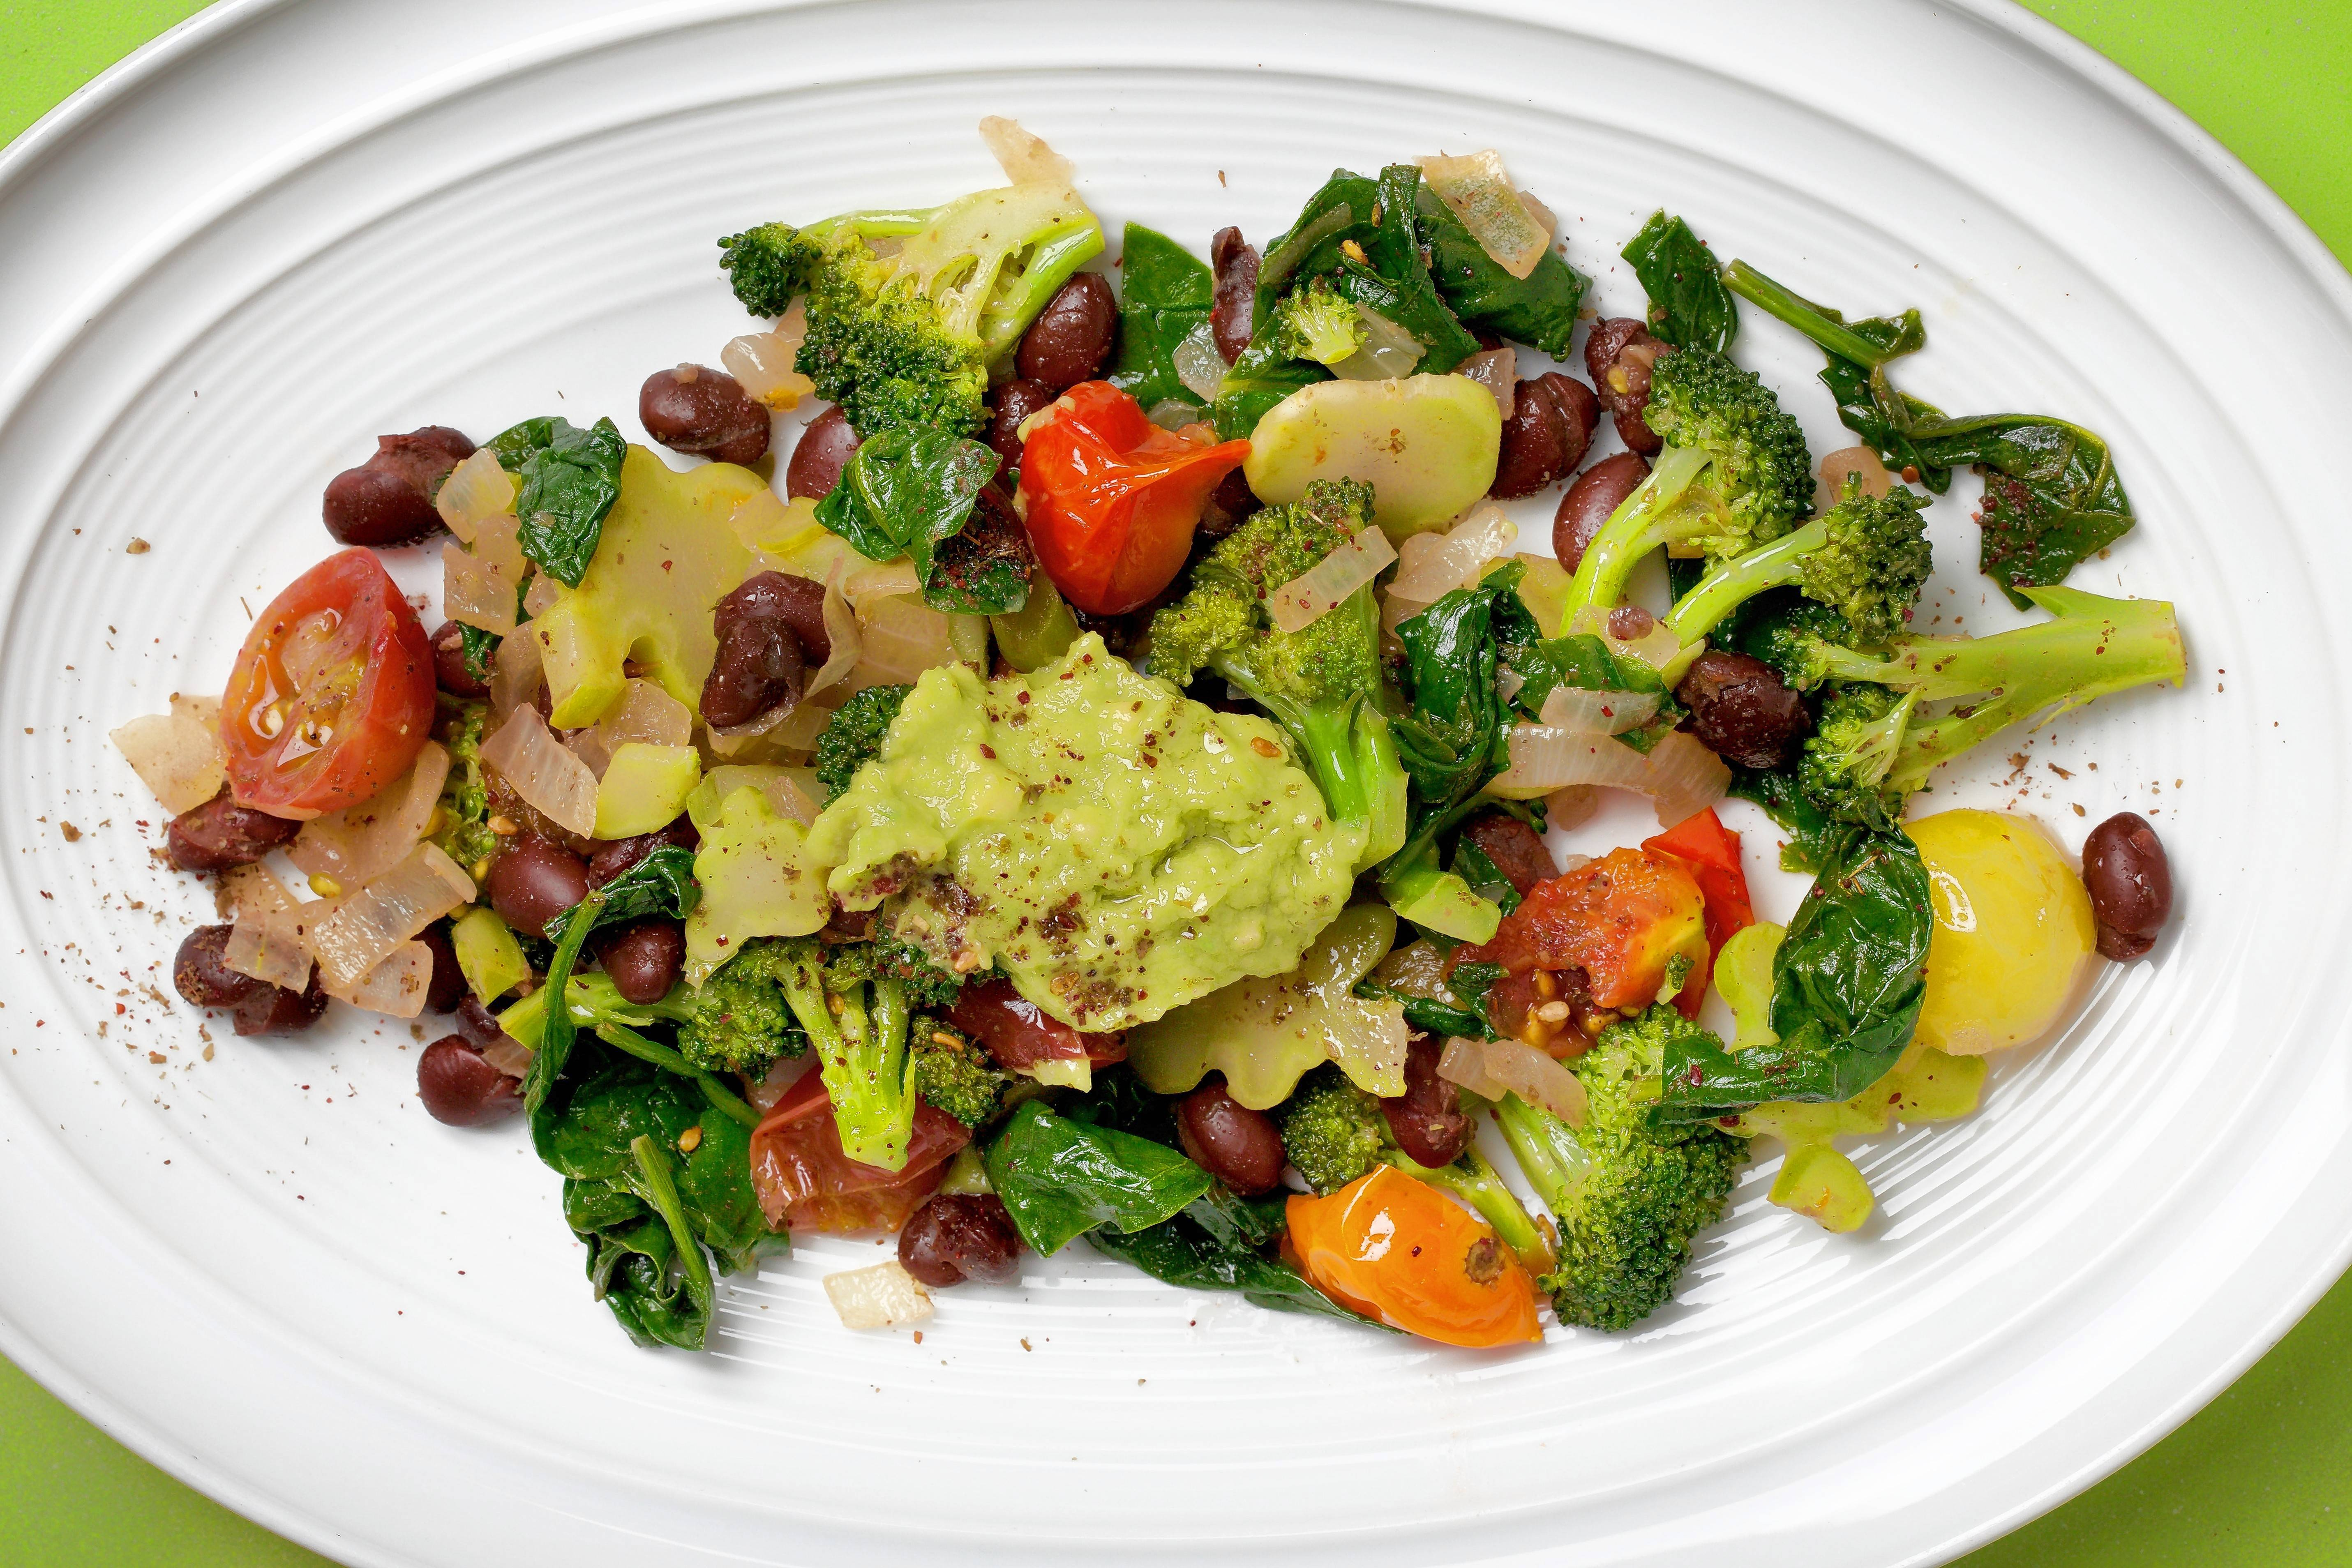 Black Beans and Greens With Avocado and Za'atar.